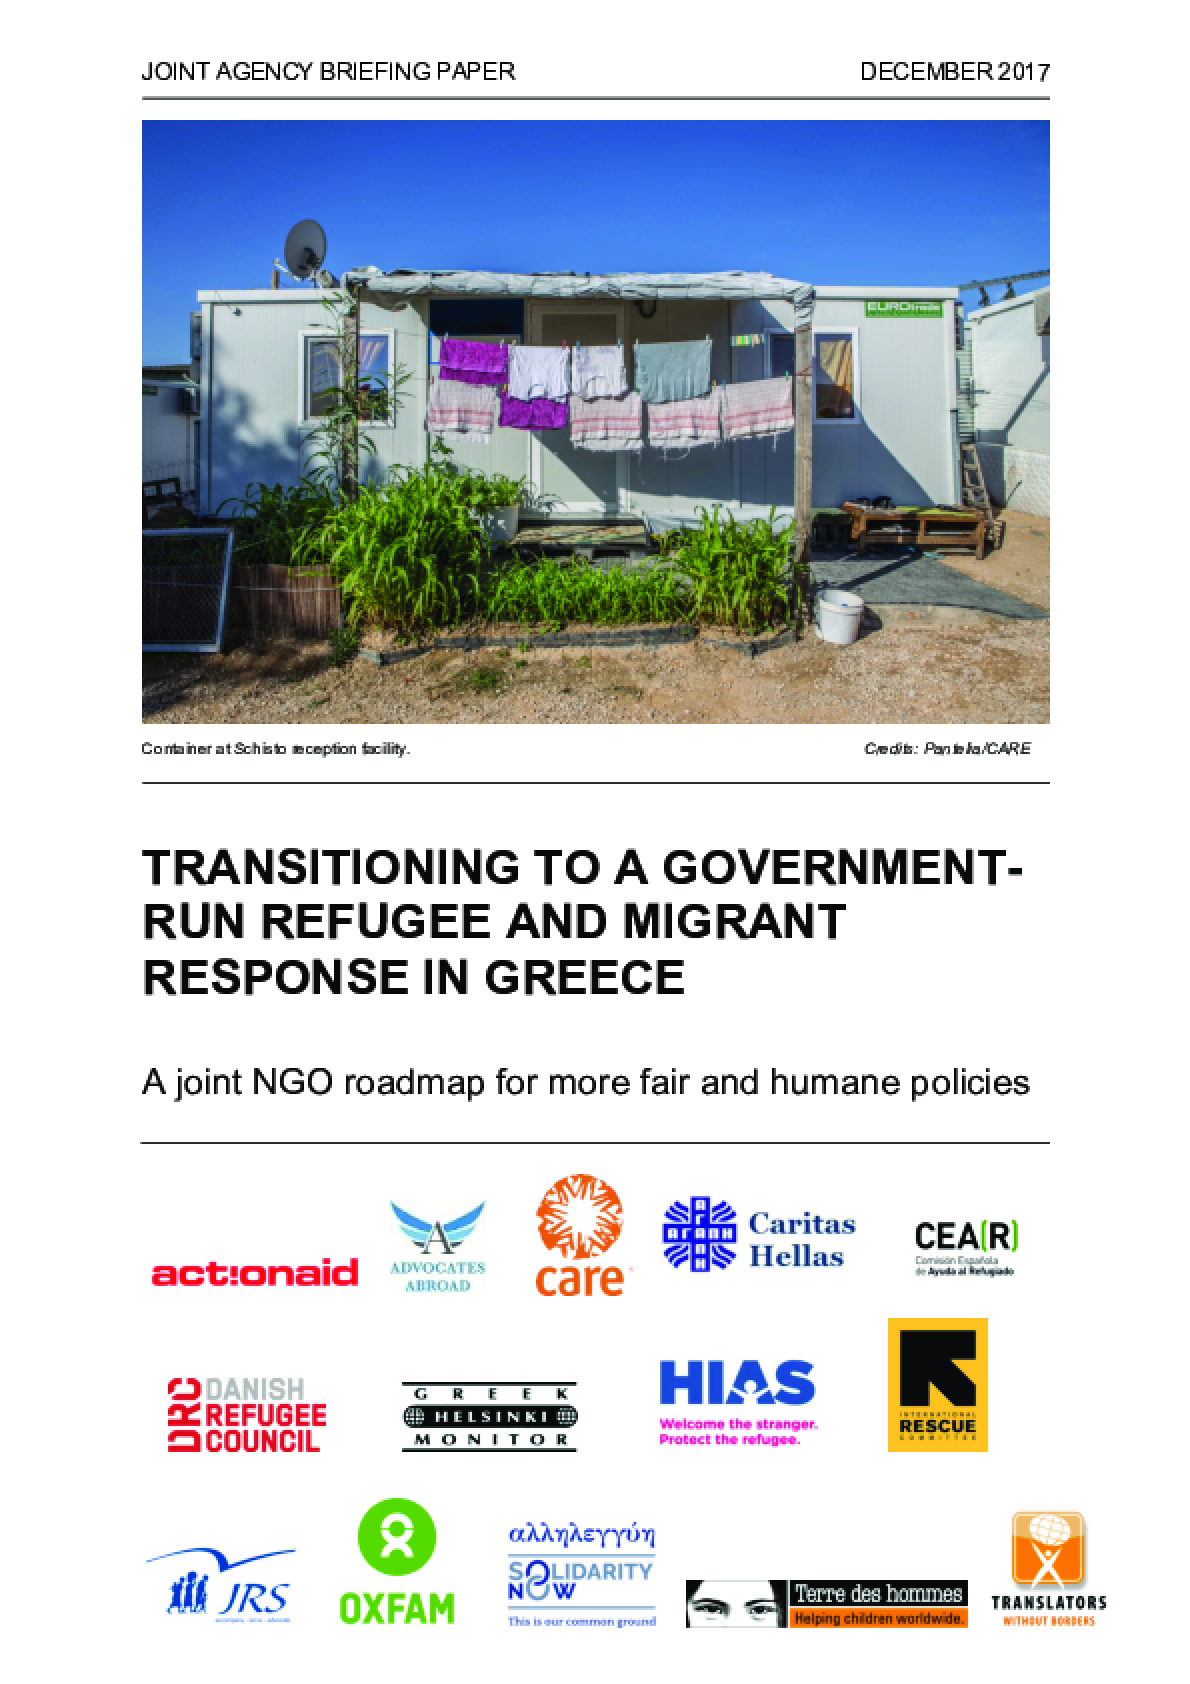 Transitioning to a Government-Run Refugee and Migrant Response in Greece: A joint NGO roadmap for more fair and humane policies